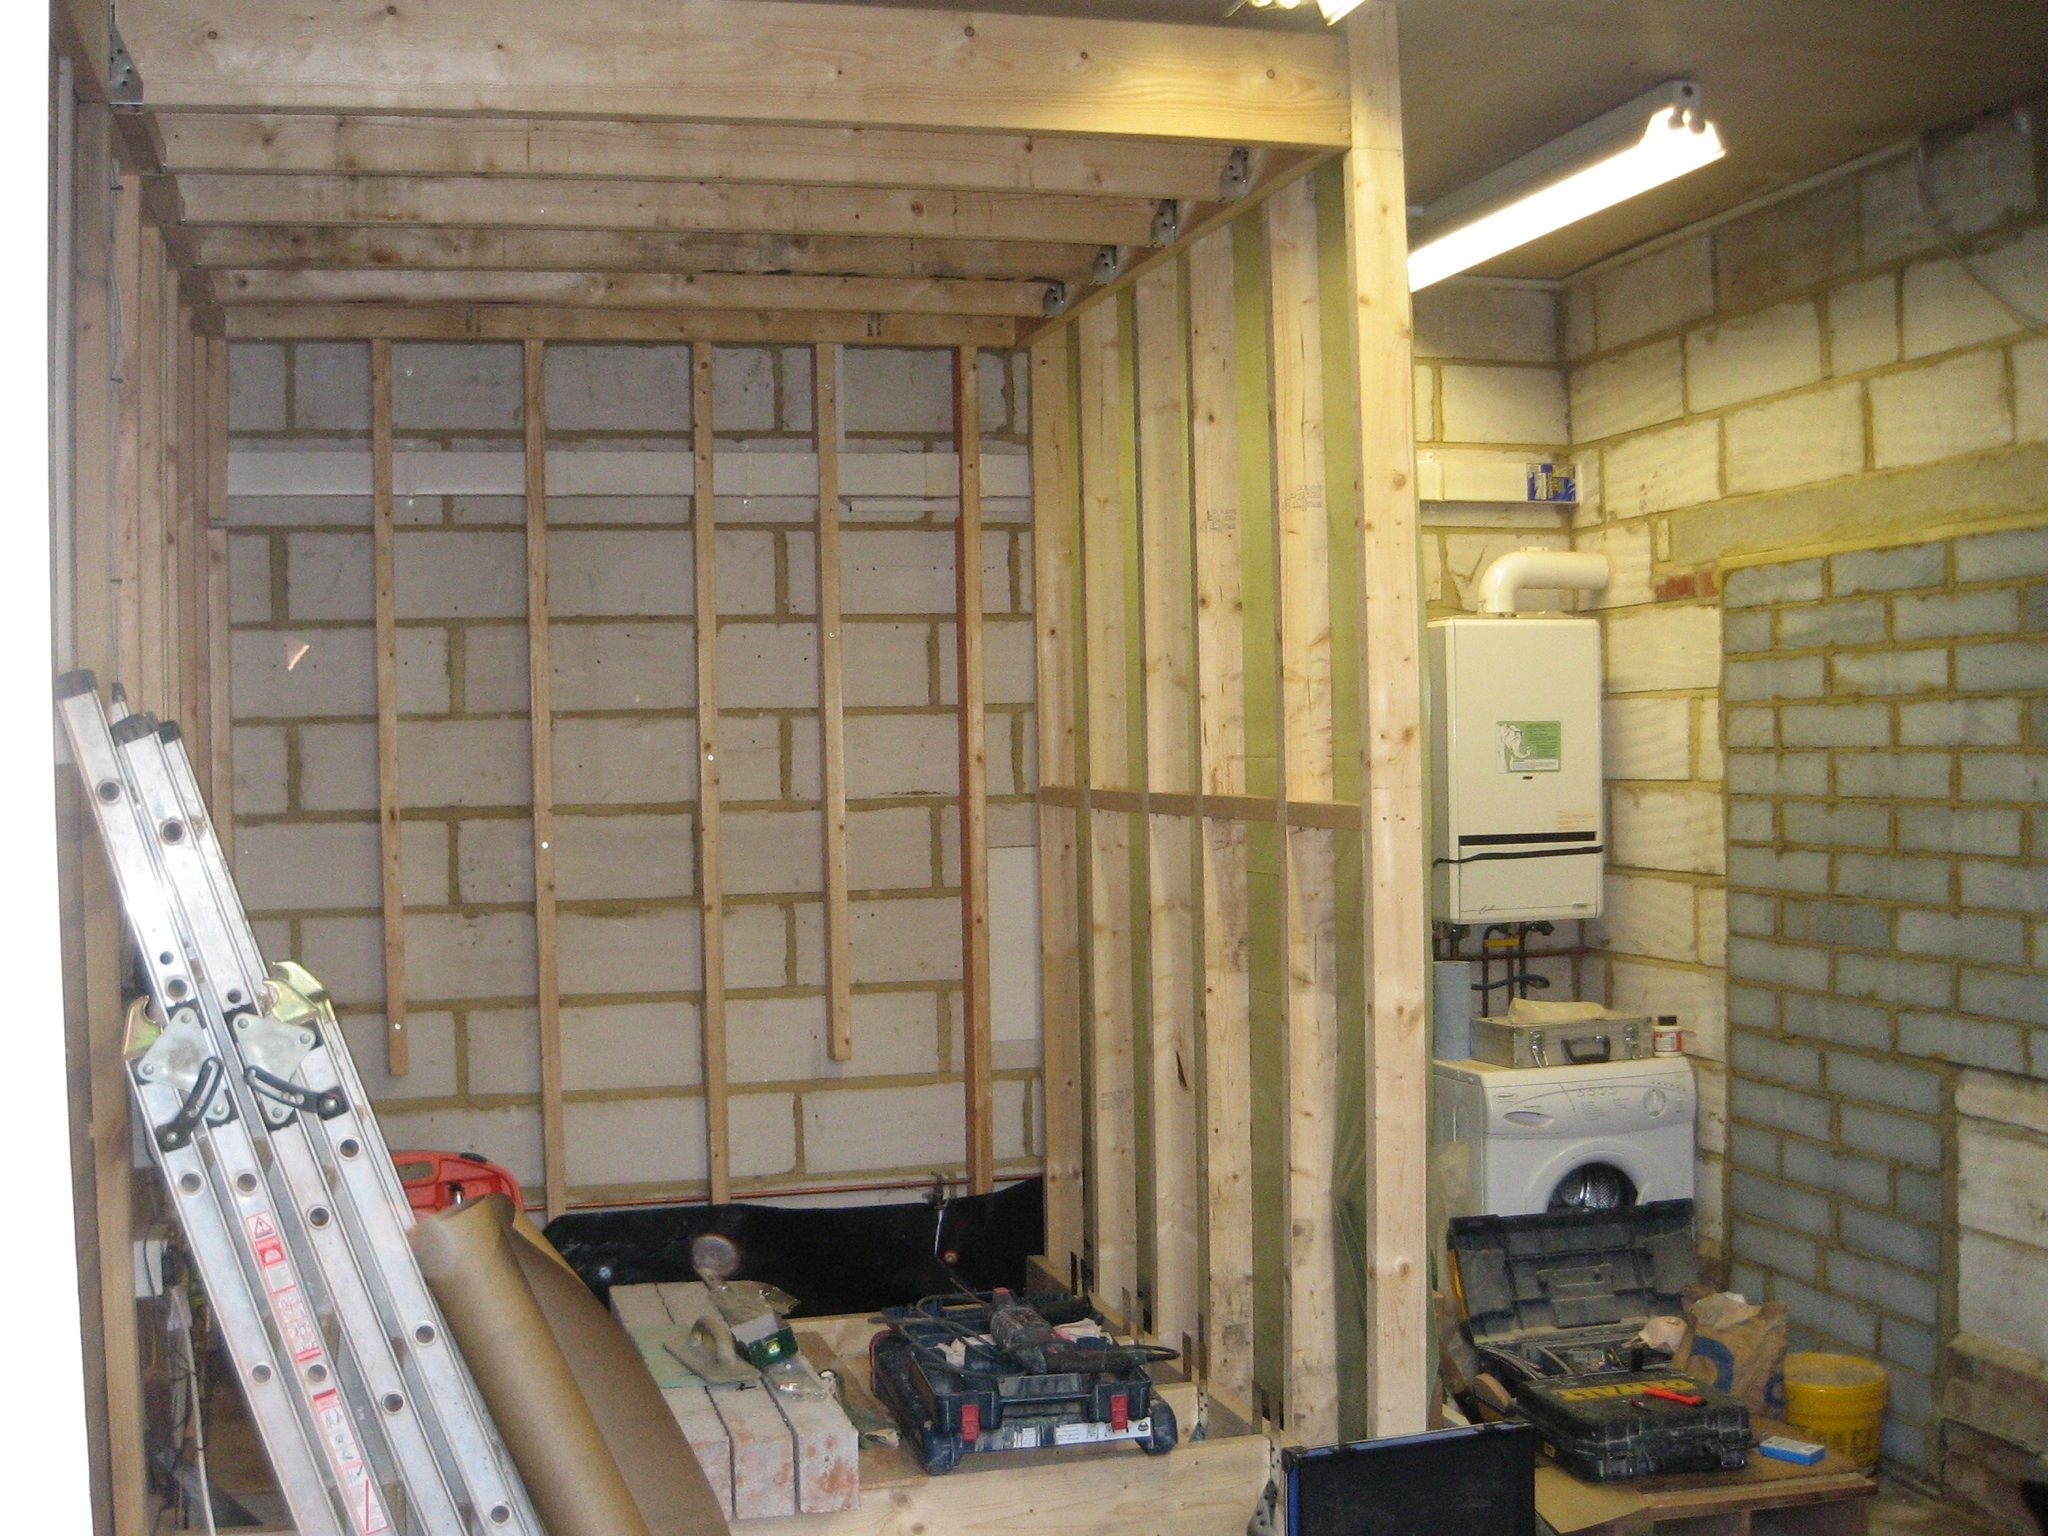 How to build an interior wall in the garage - Timber Frame Wall Construction Through Out Perimeter Of The Garage And Also Creating The Ensuite Wet